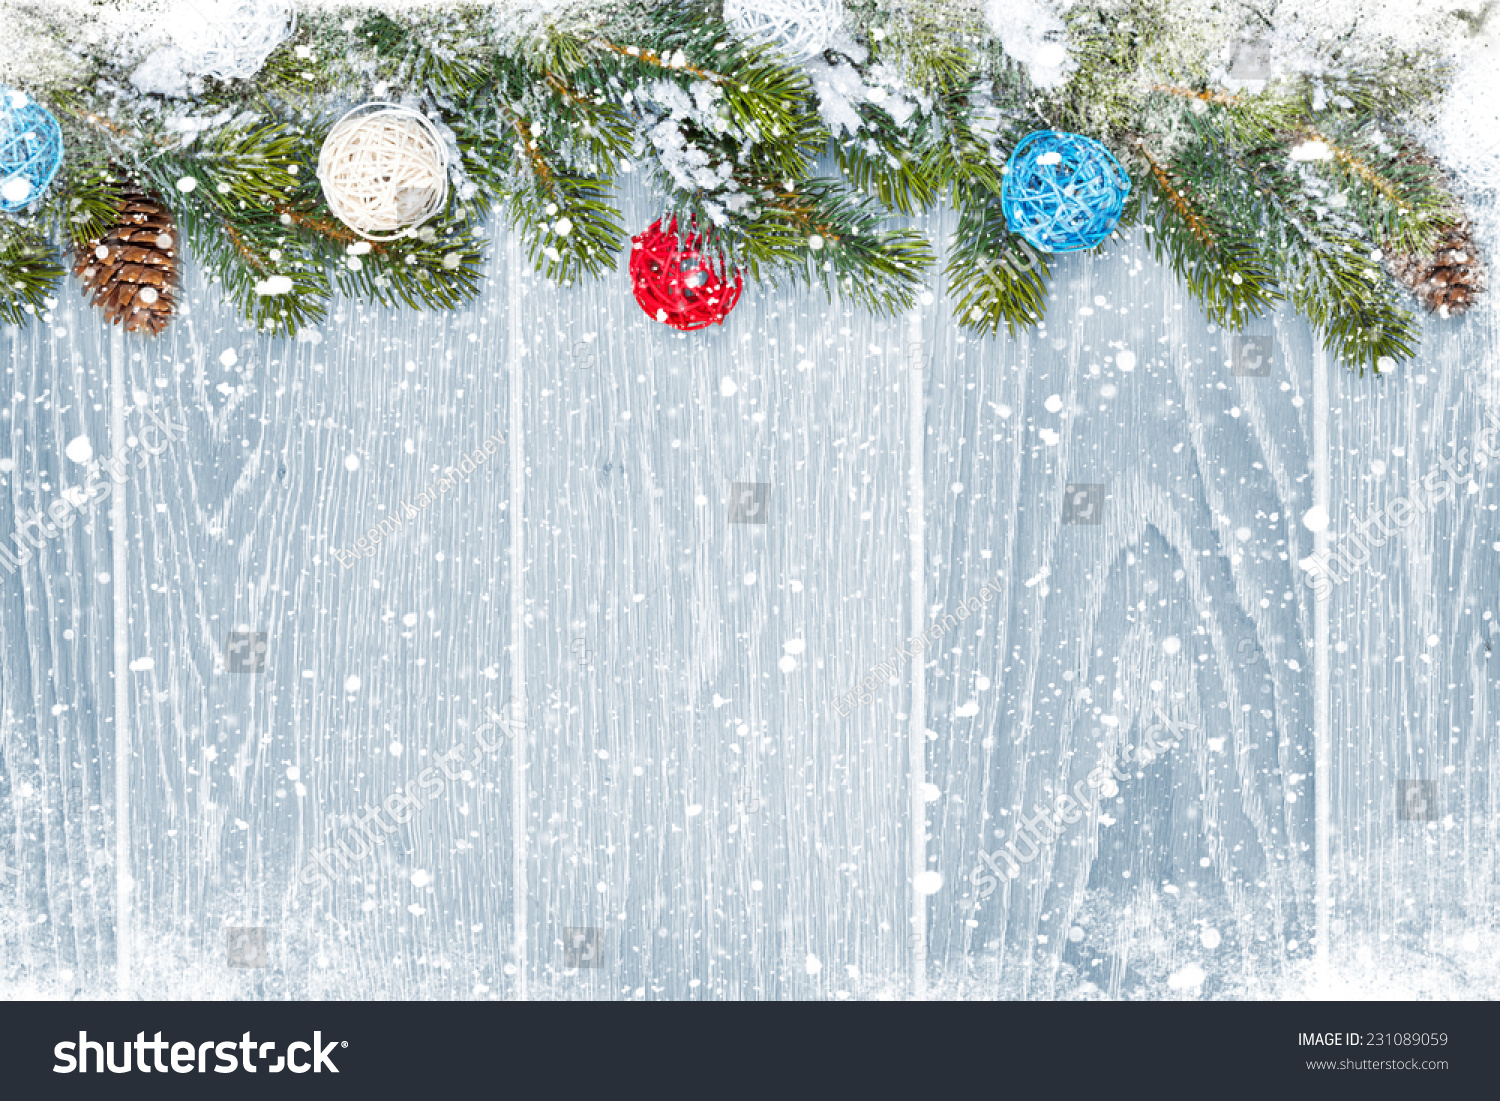 Christmas wooden background with snow fir tree, decor and copy space #231089059